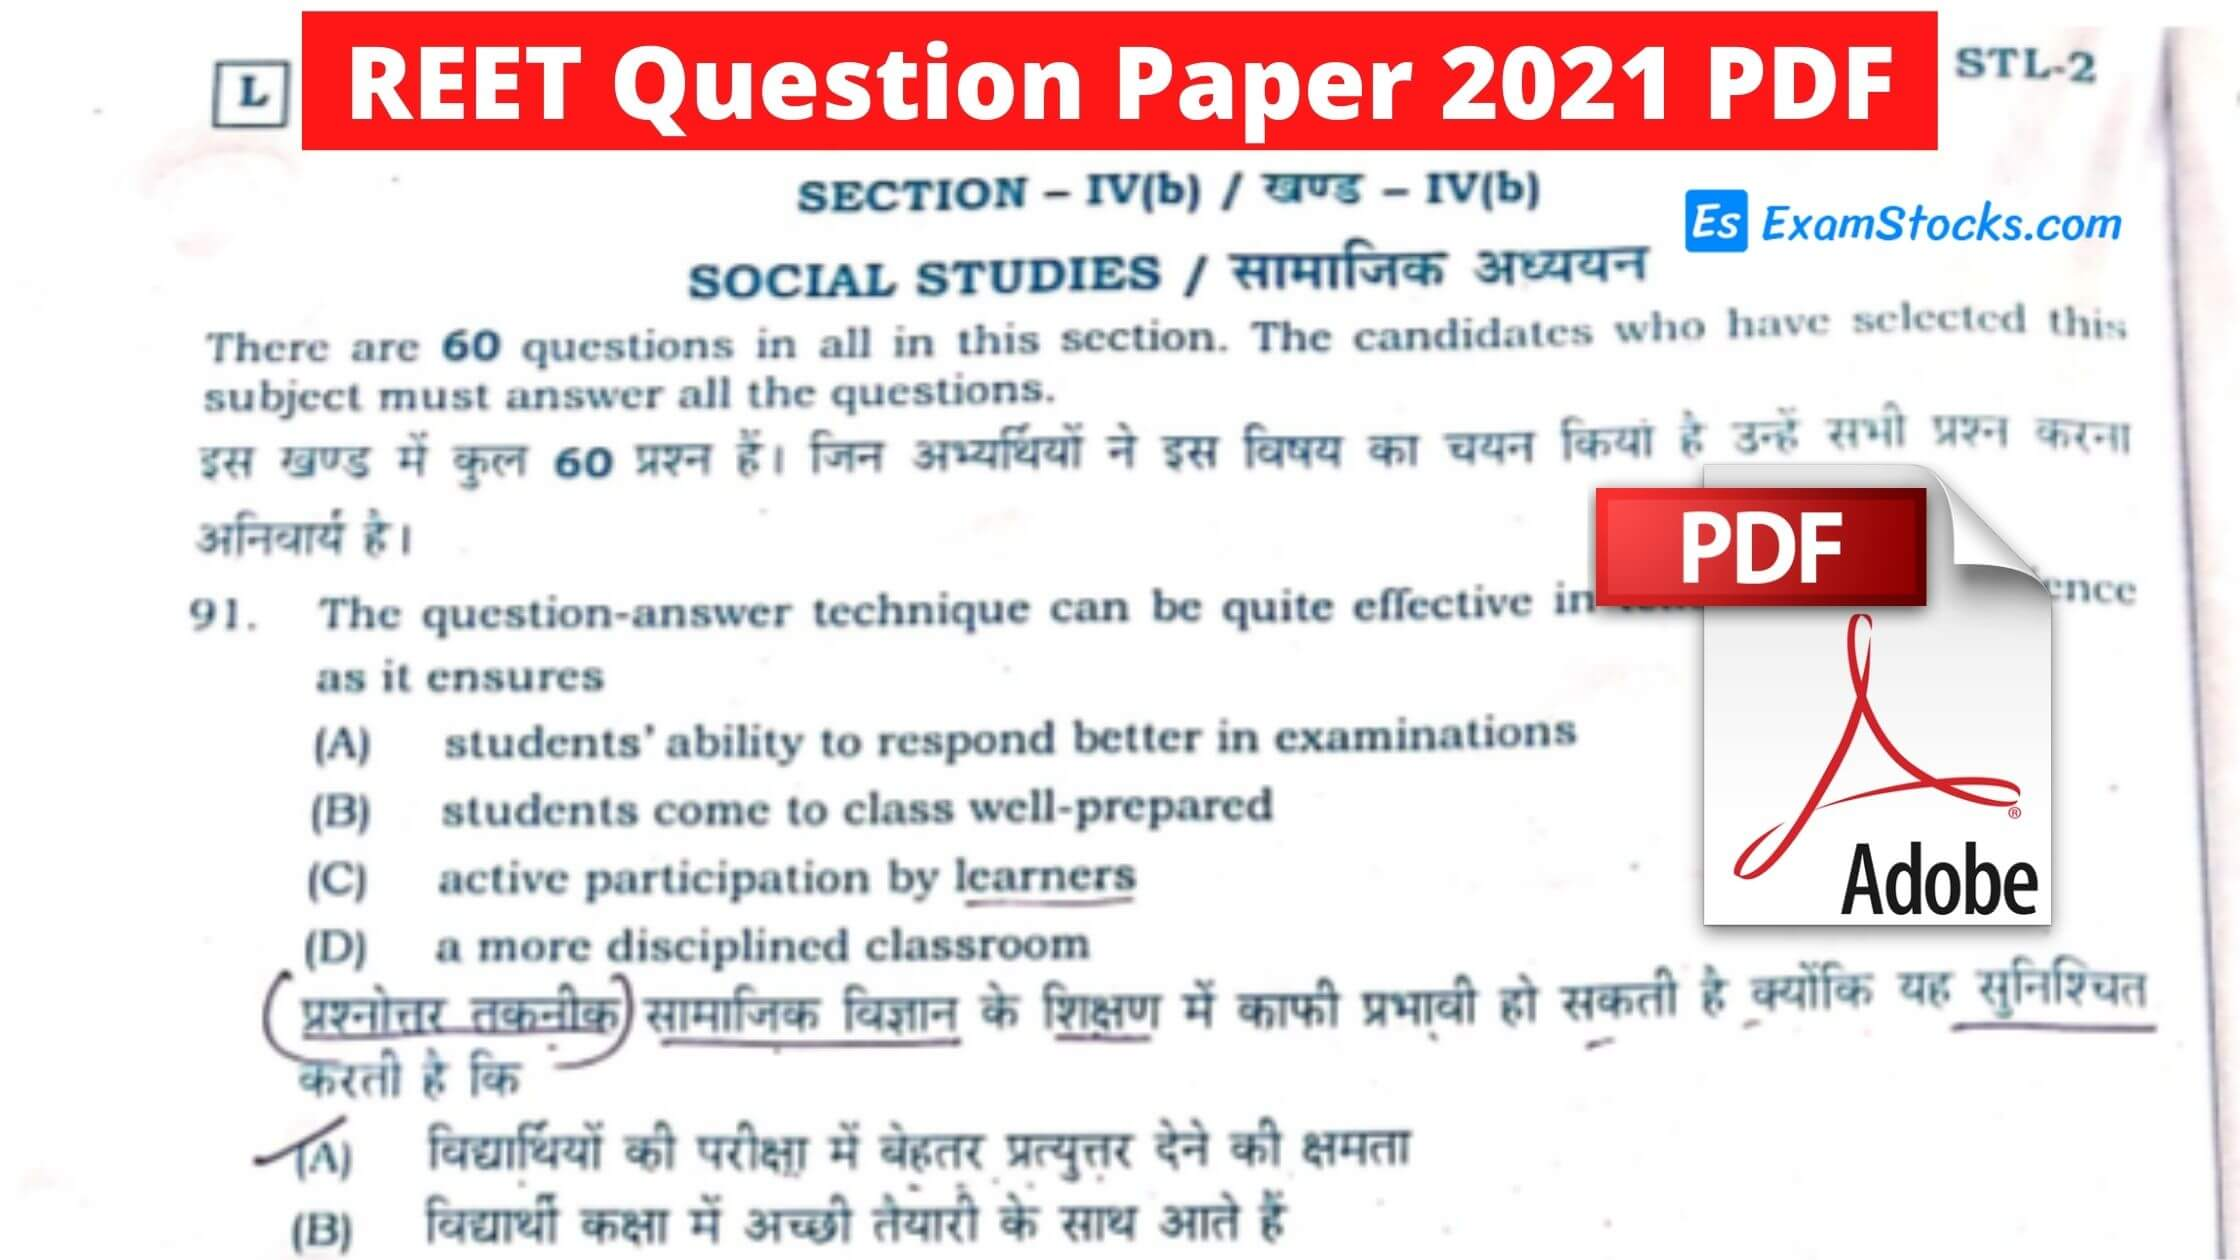 REET Solved Question Paper 2021 PDF